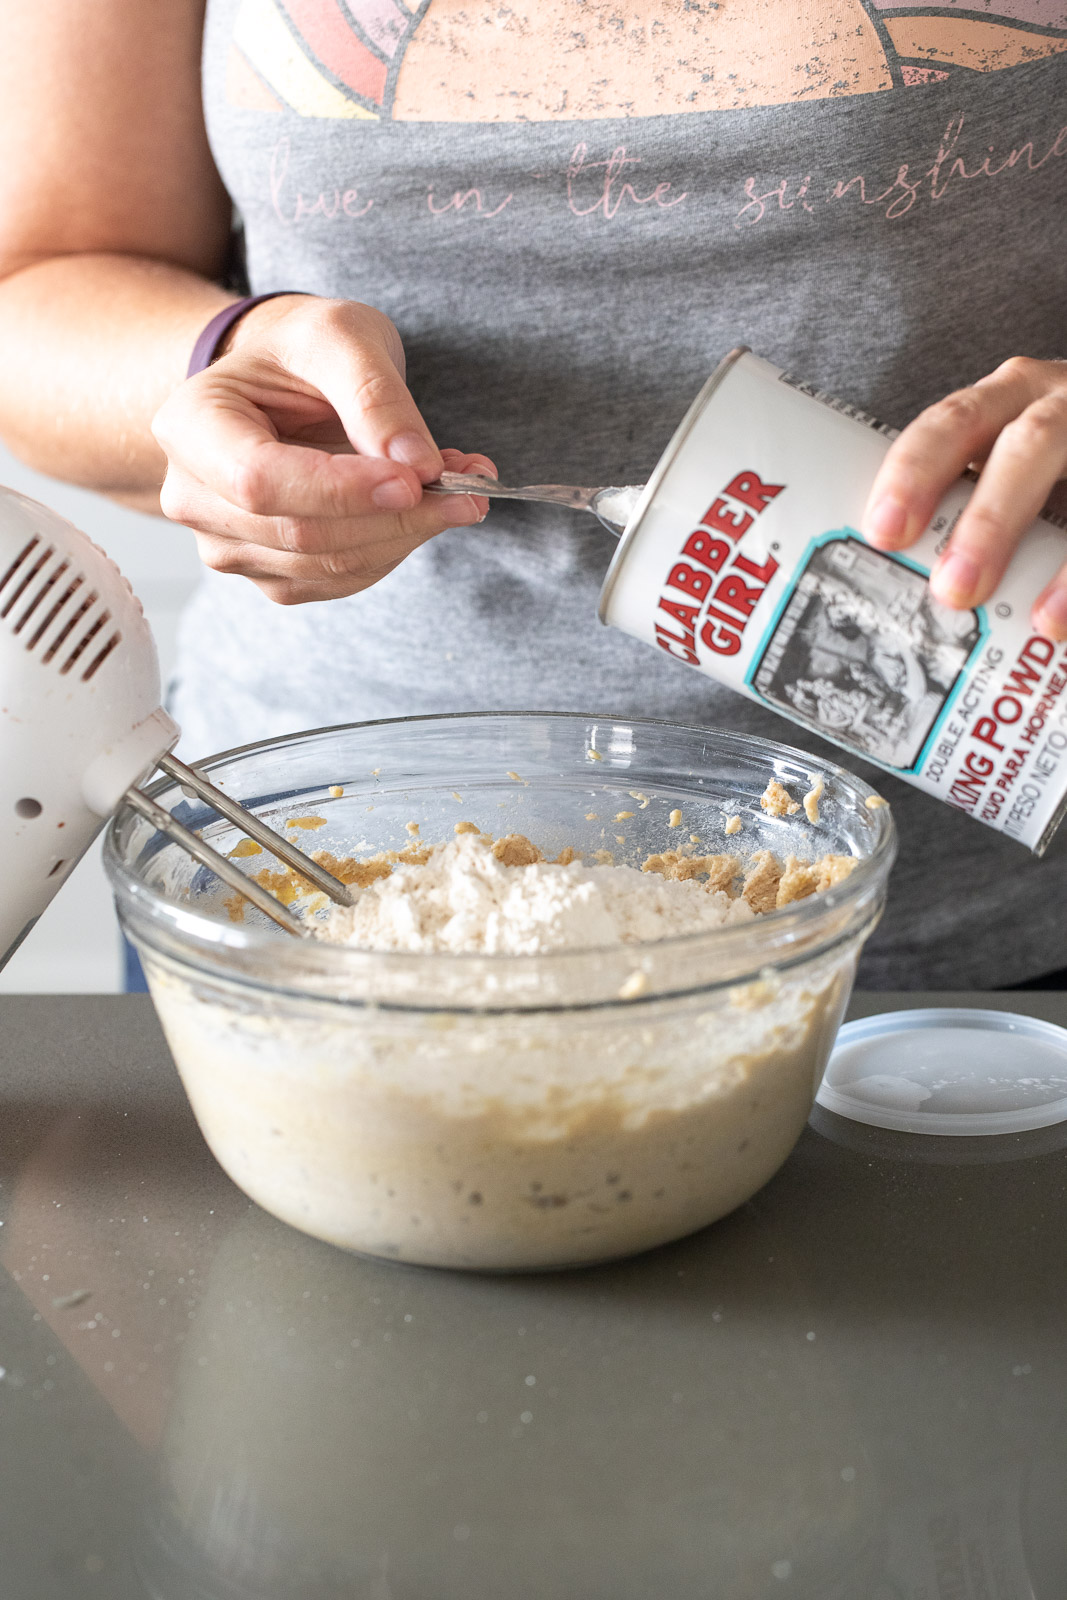 woman adding baking powder to a glass bowl for mixing.